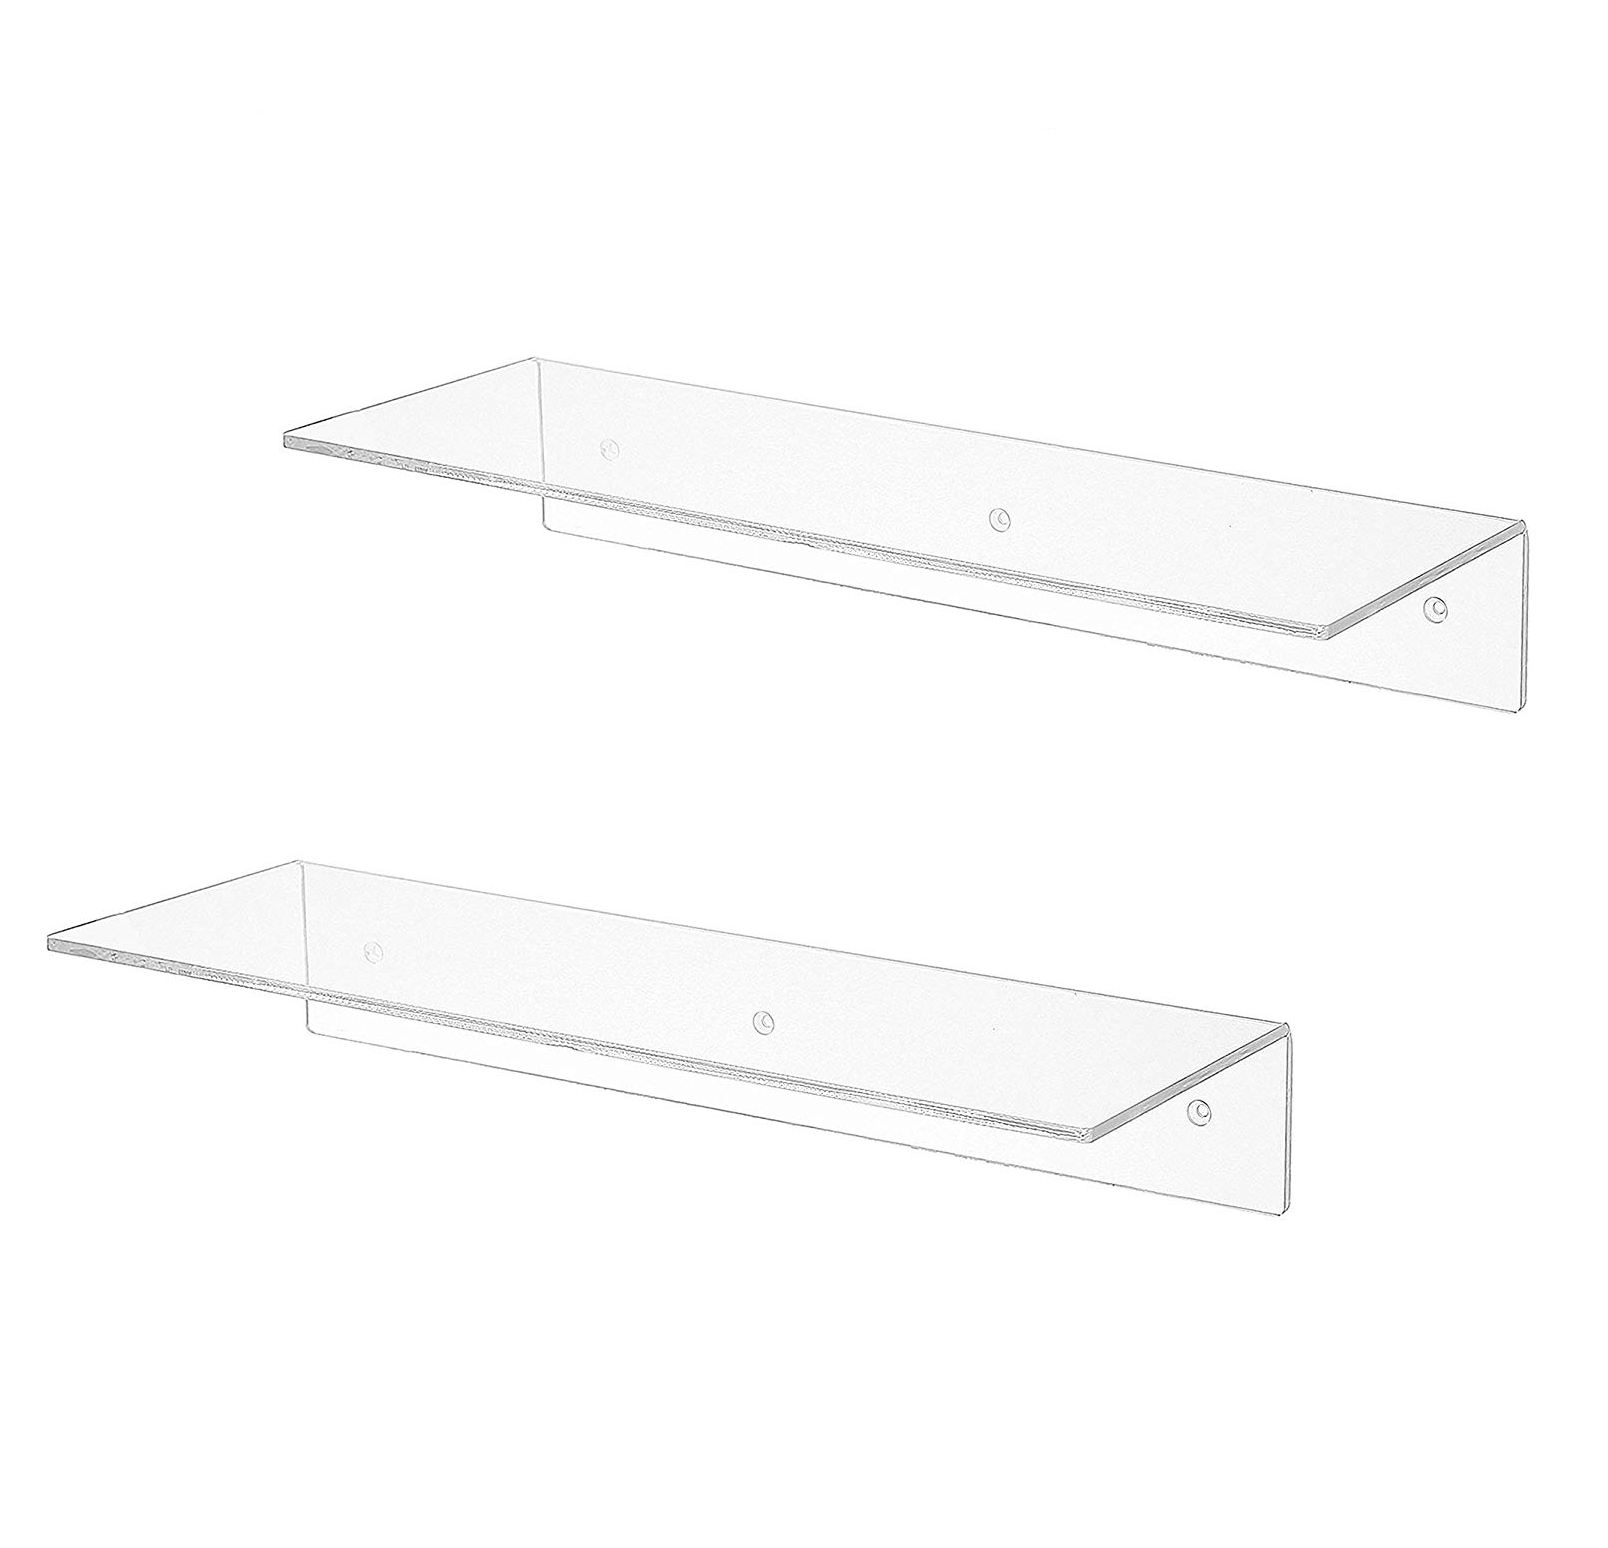 17 Inch Clear Acrylic Floating Shelves Wall Mounted Modern Display Racks